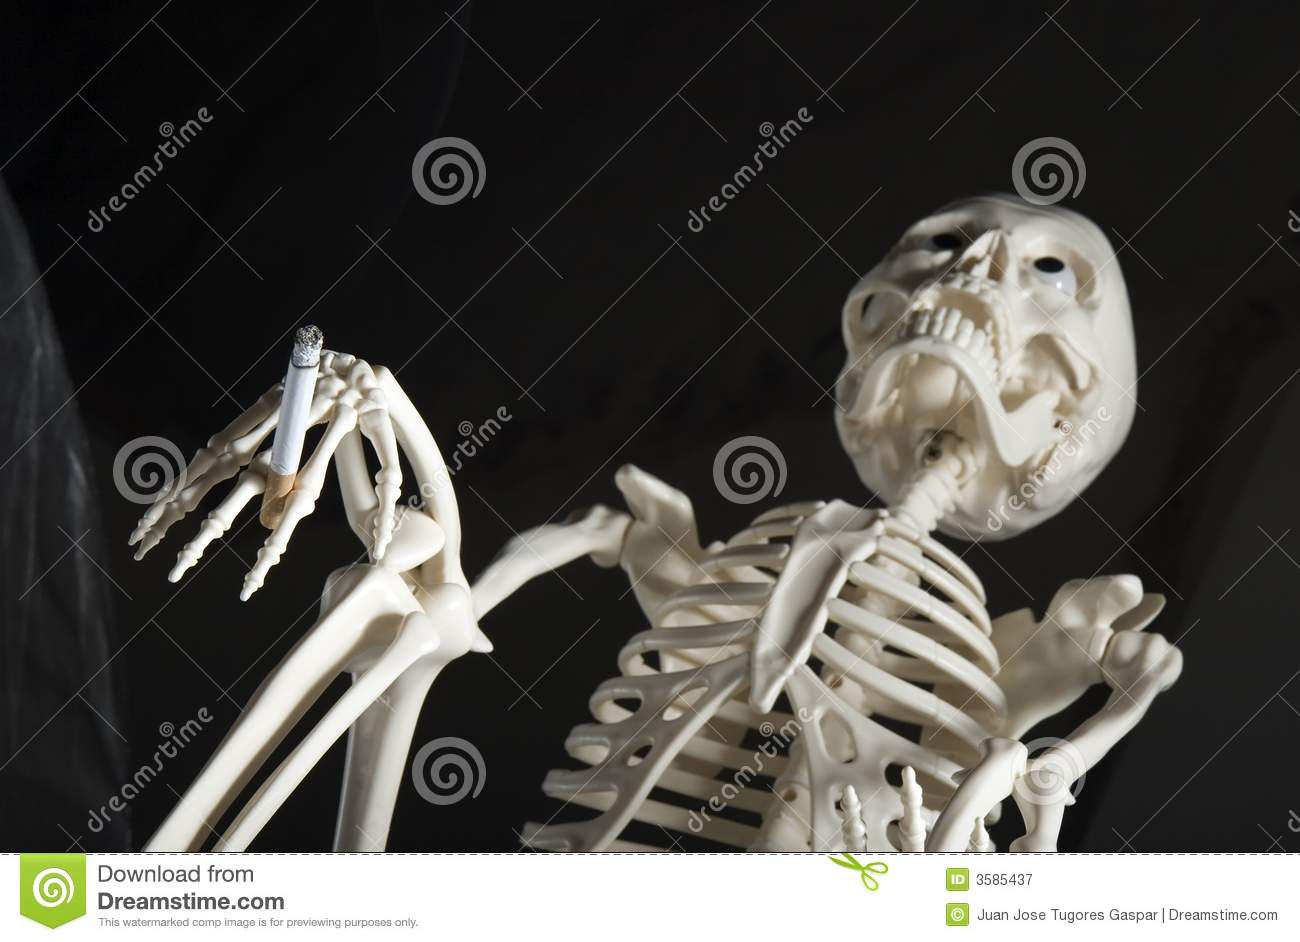 Human skeleton with cigarette